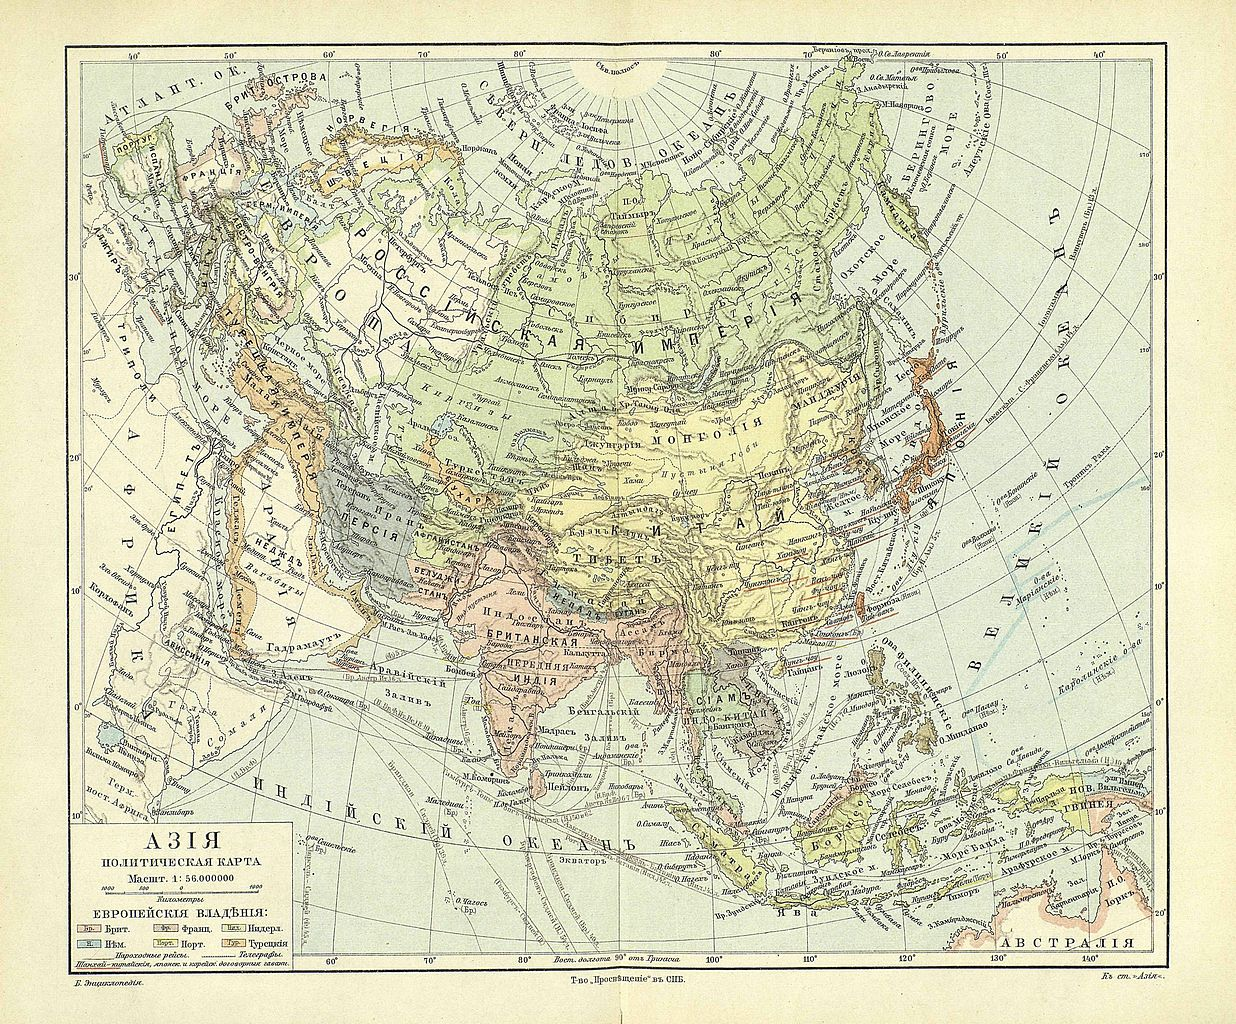 Big Map Of Asia.File Yuzhakov Big Encyclopedia Political Map Of Asia Jpg Wikimedia